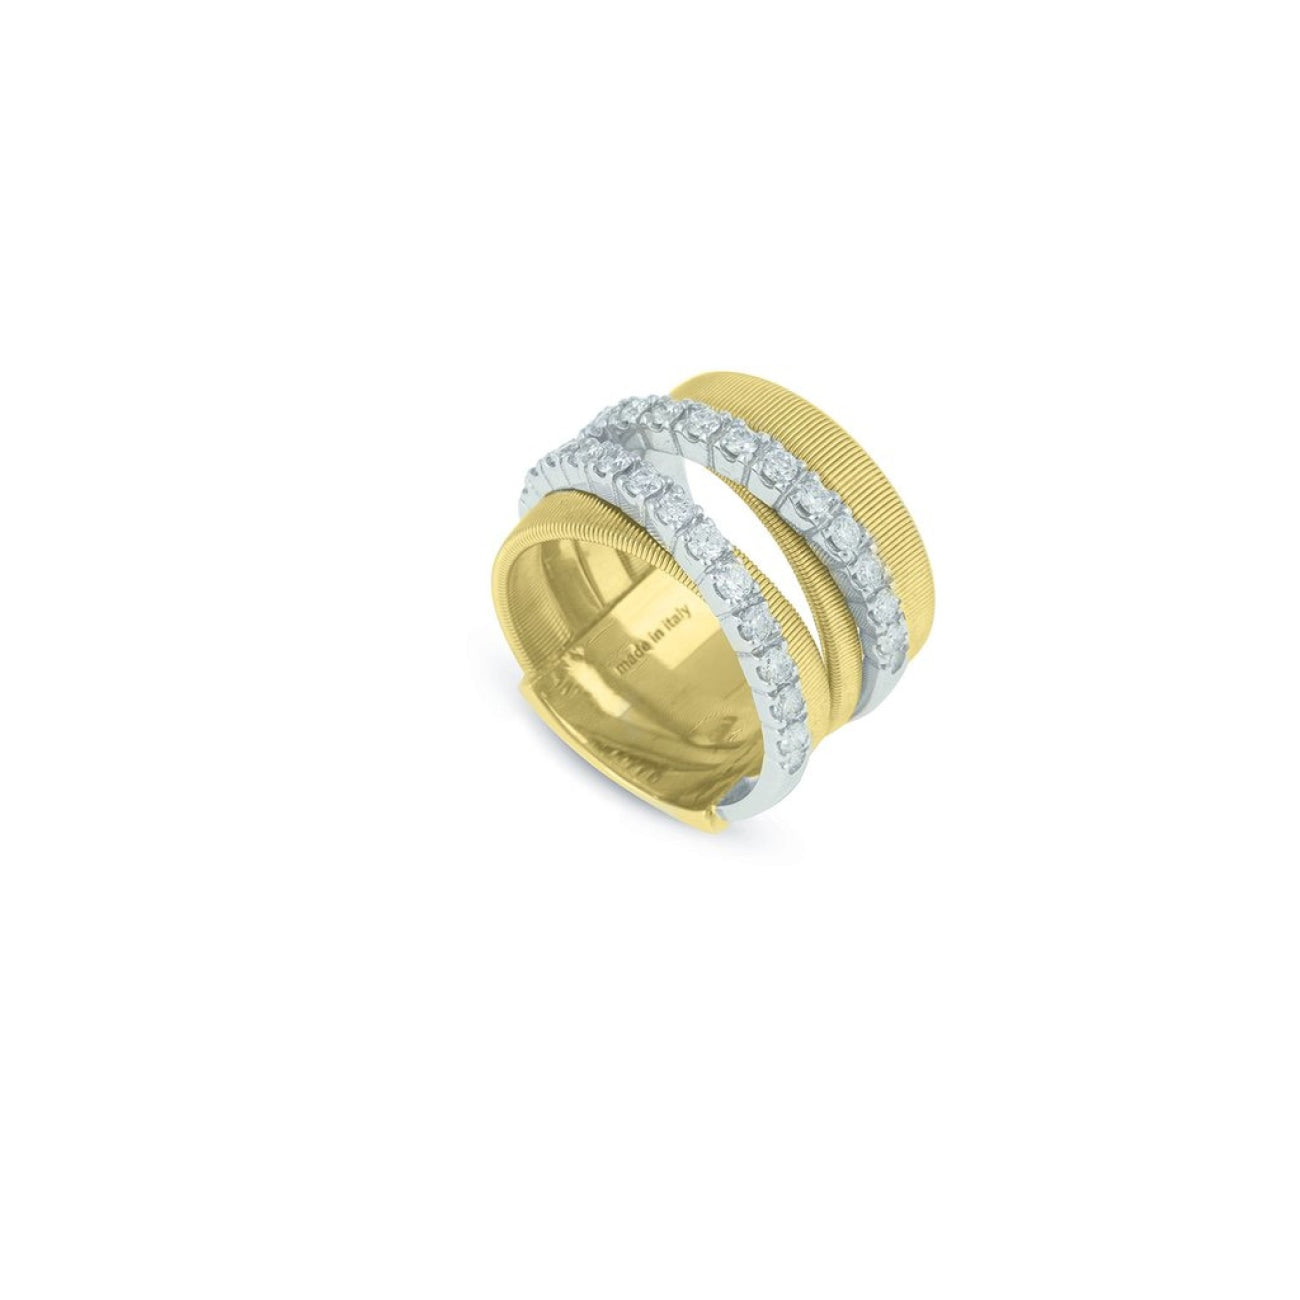 Marco Bicego Jewelry - 18K Yellow Gold & Diamond five Row Crossover Ring | Manfredi Jewels